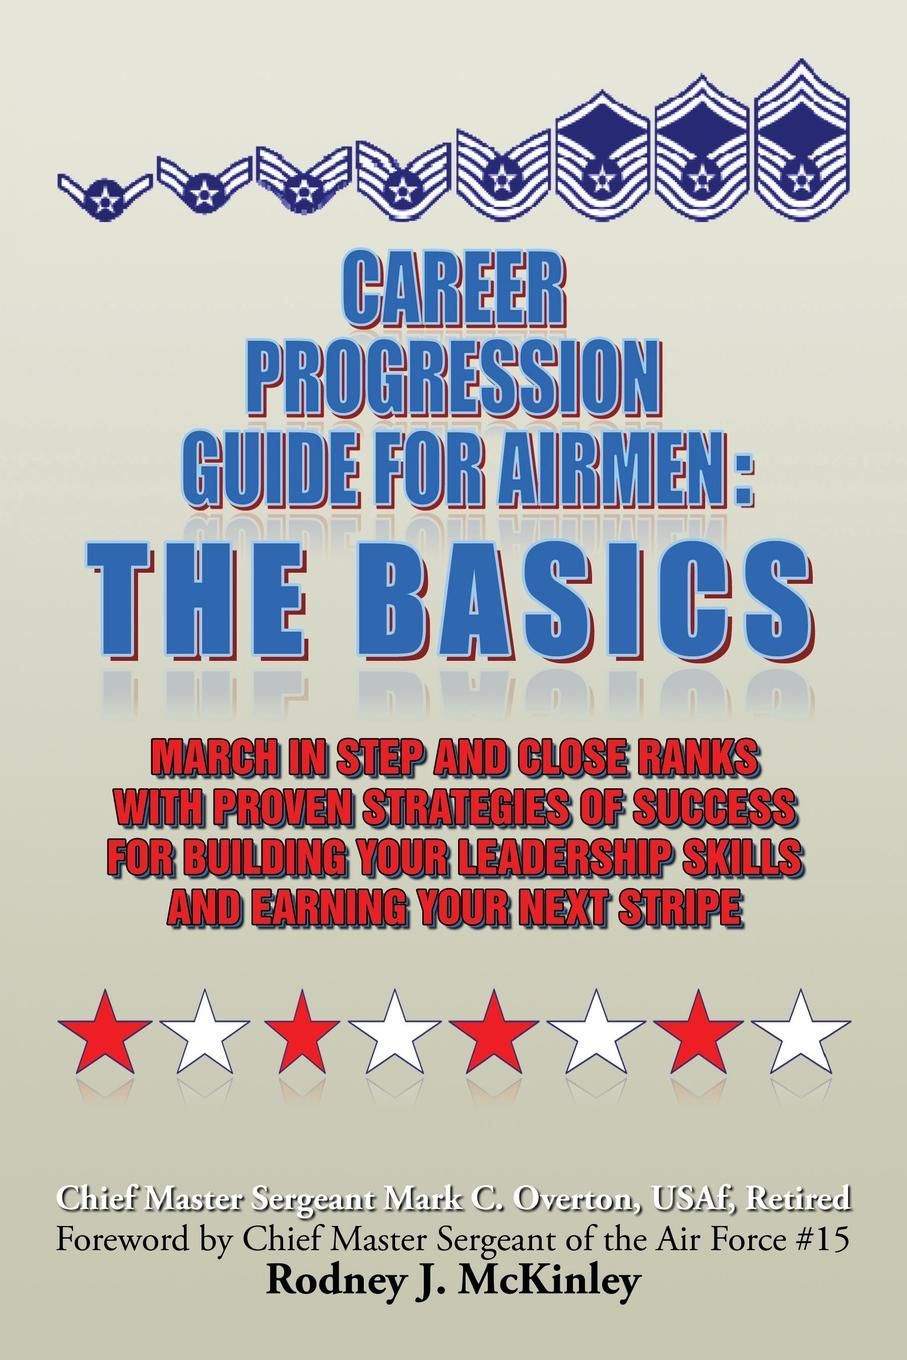 Mark C. Overton Career Progression Guide For Airmen. The Basics: March in Step and Close Ranks with Proven Strategies of Success for Building Your Leadership Skills and Earning Your Next Stripe mark karlen lighting design basics